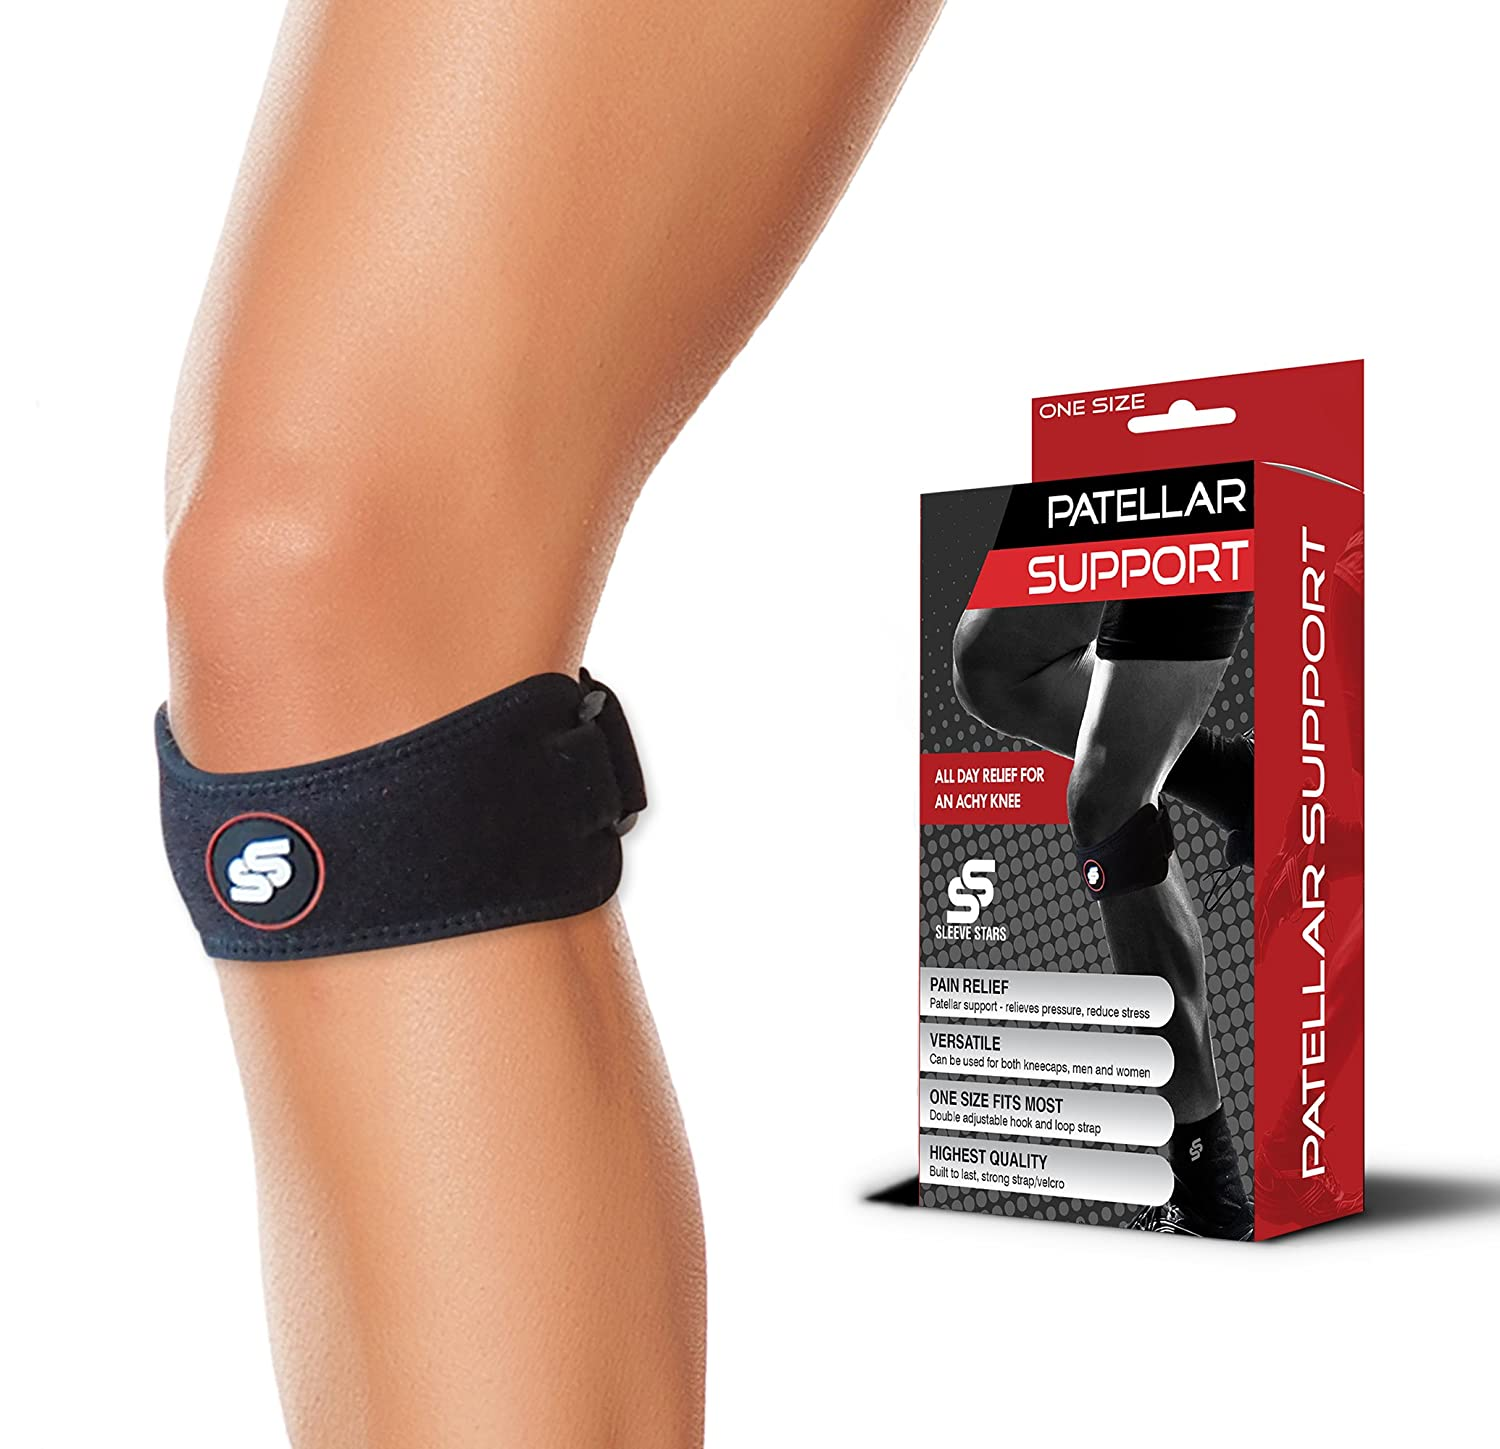 c21073633a Amazon.com: Patella Strap for Knee Pain Relief - Knee Support for  Arthritis, Osgood Schlatter, Runners Knee, Jumpers Knee, Tendonitis &  Volleyball: Sports & ...